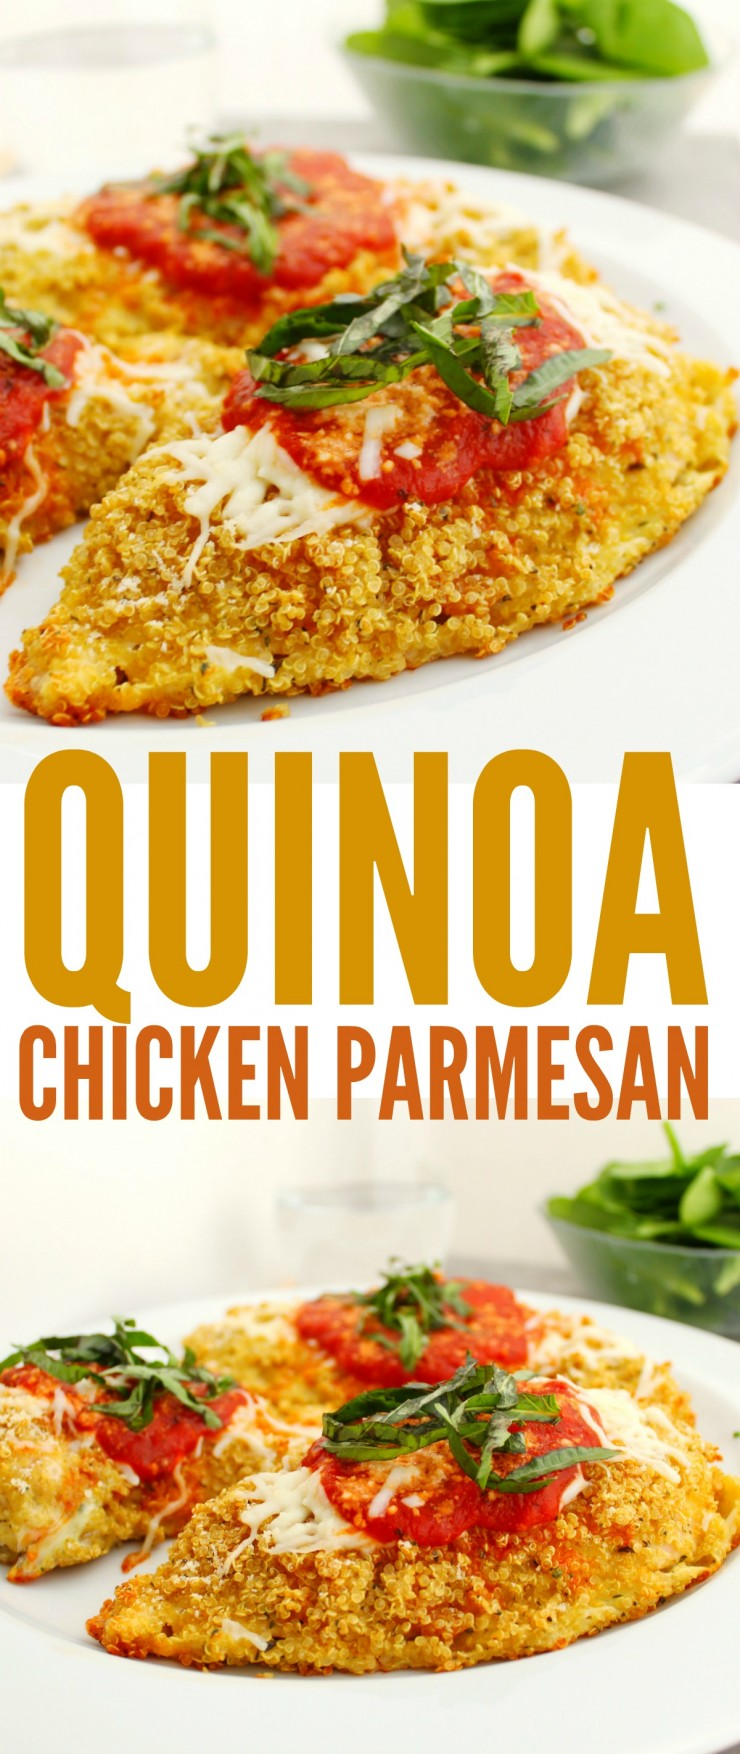 This Gluten Free Quinoa Chicken Parmesan has a surprisingly crisp coating your entire family will enjoy! This is a healthy twist on a classic recipe whether you eat gluten free or not.